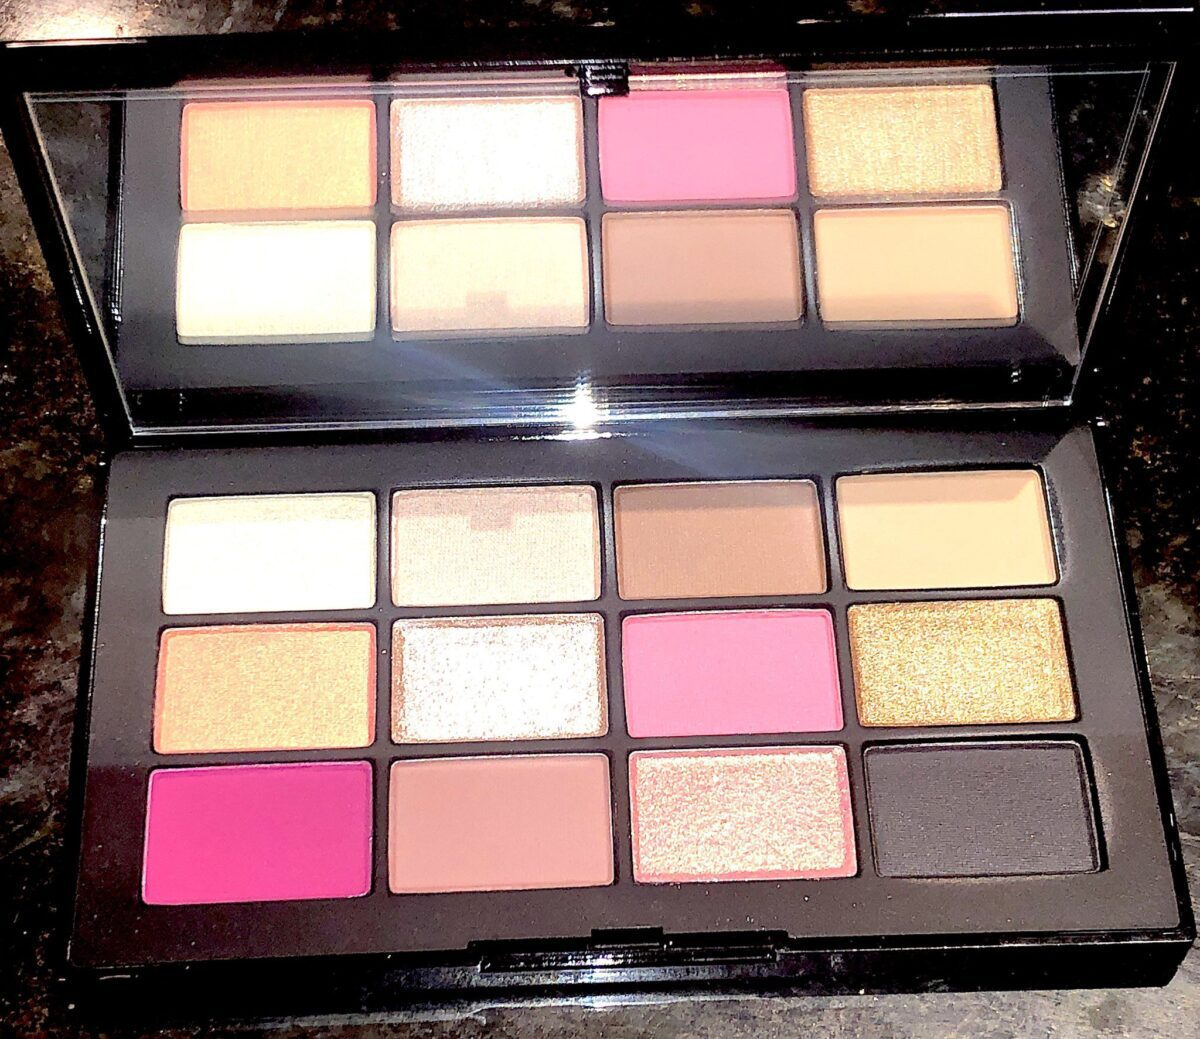 INSIDE THE NARS STUDIO 54 HOLIDAY HYPED EYESHADOW PALETTE